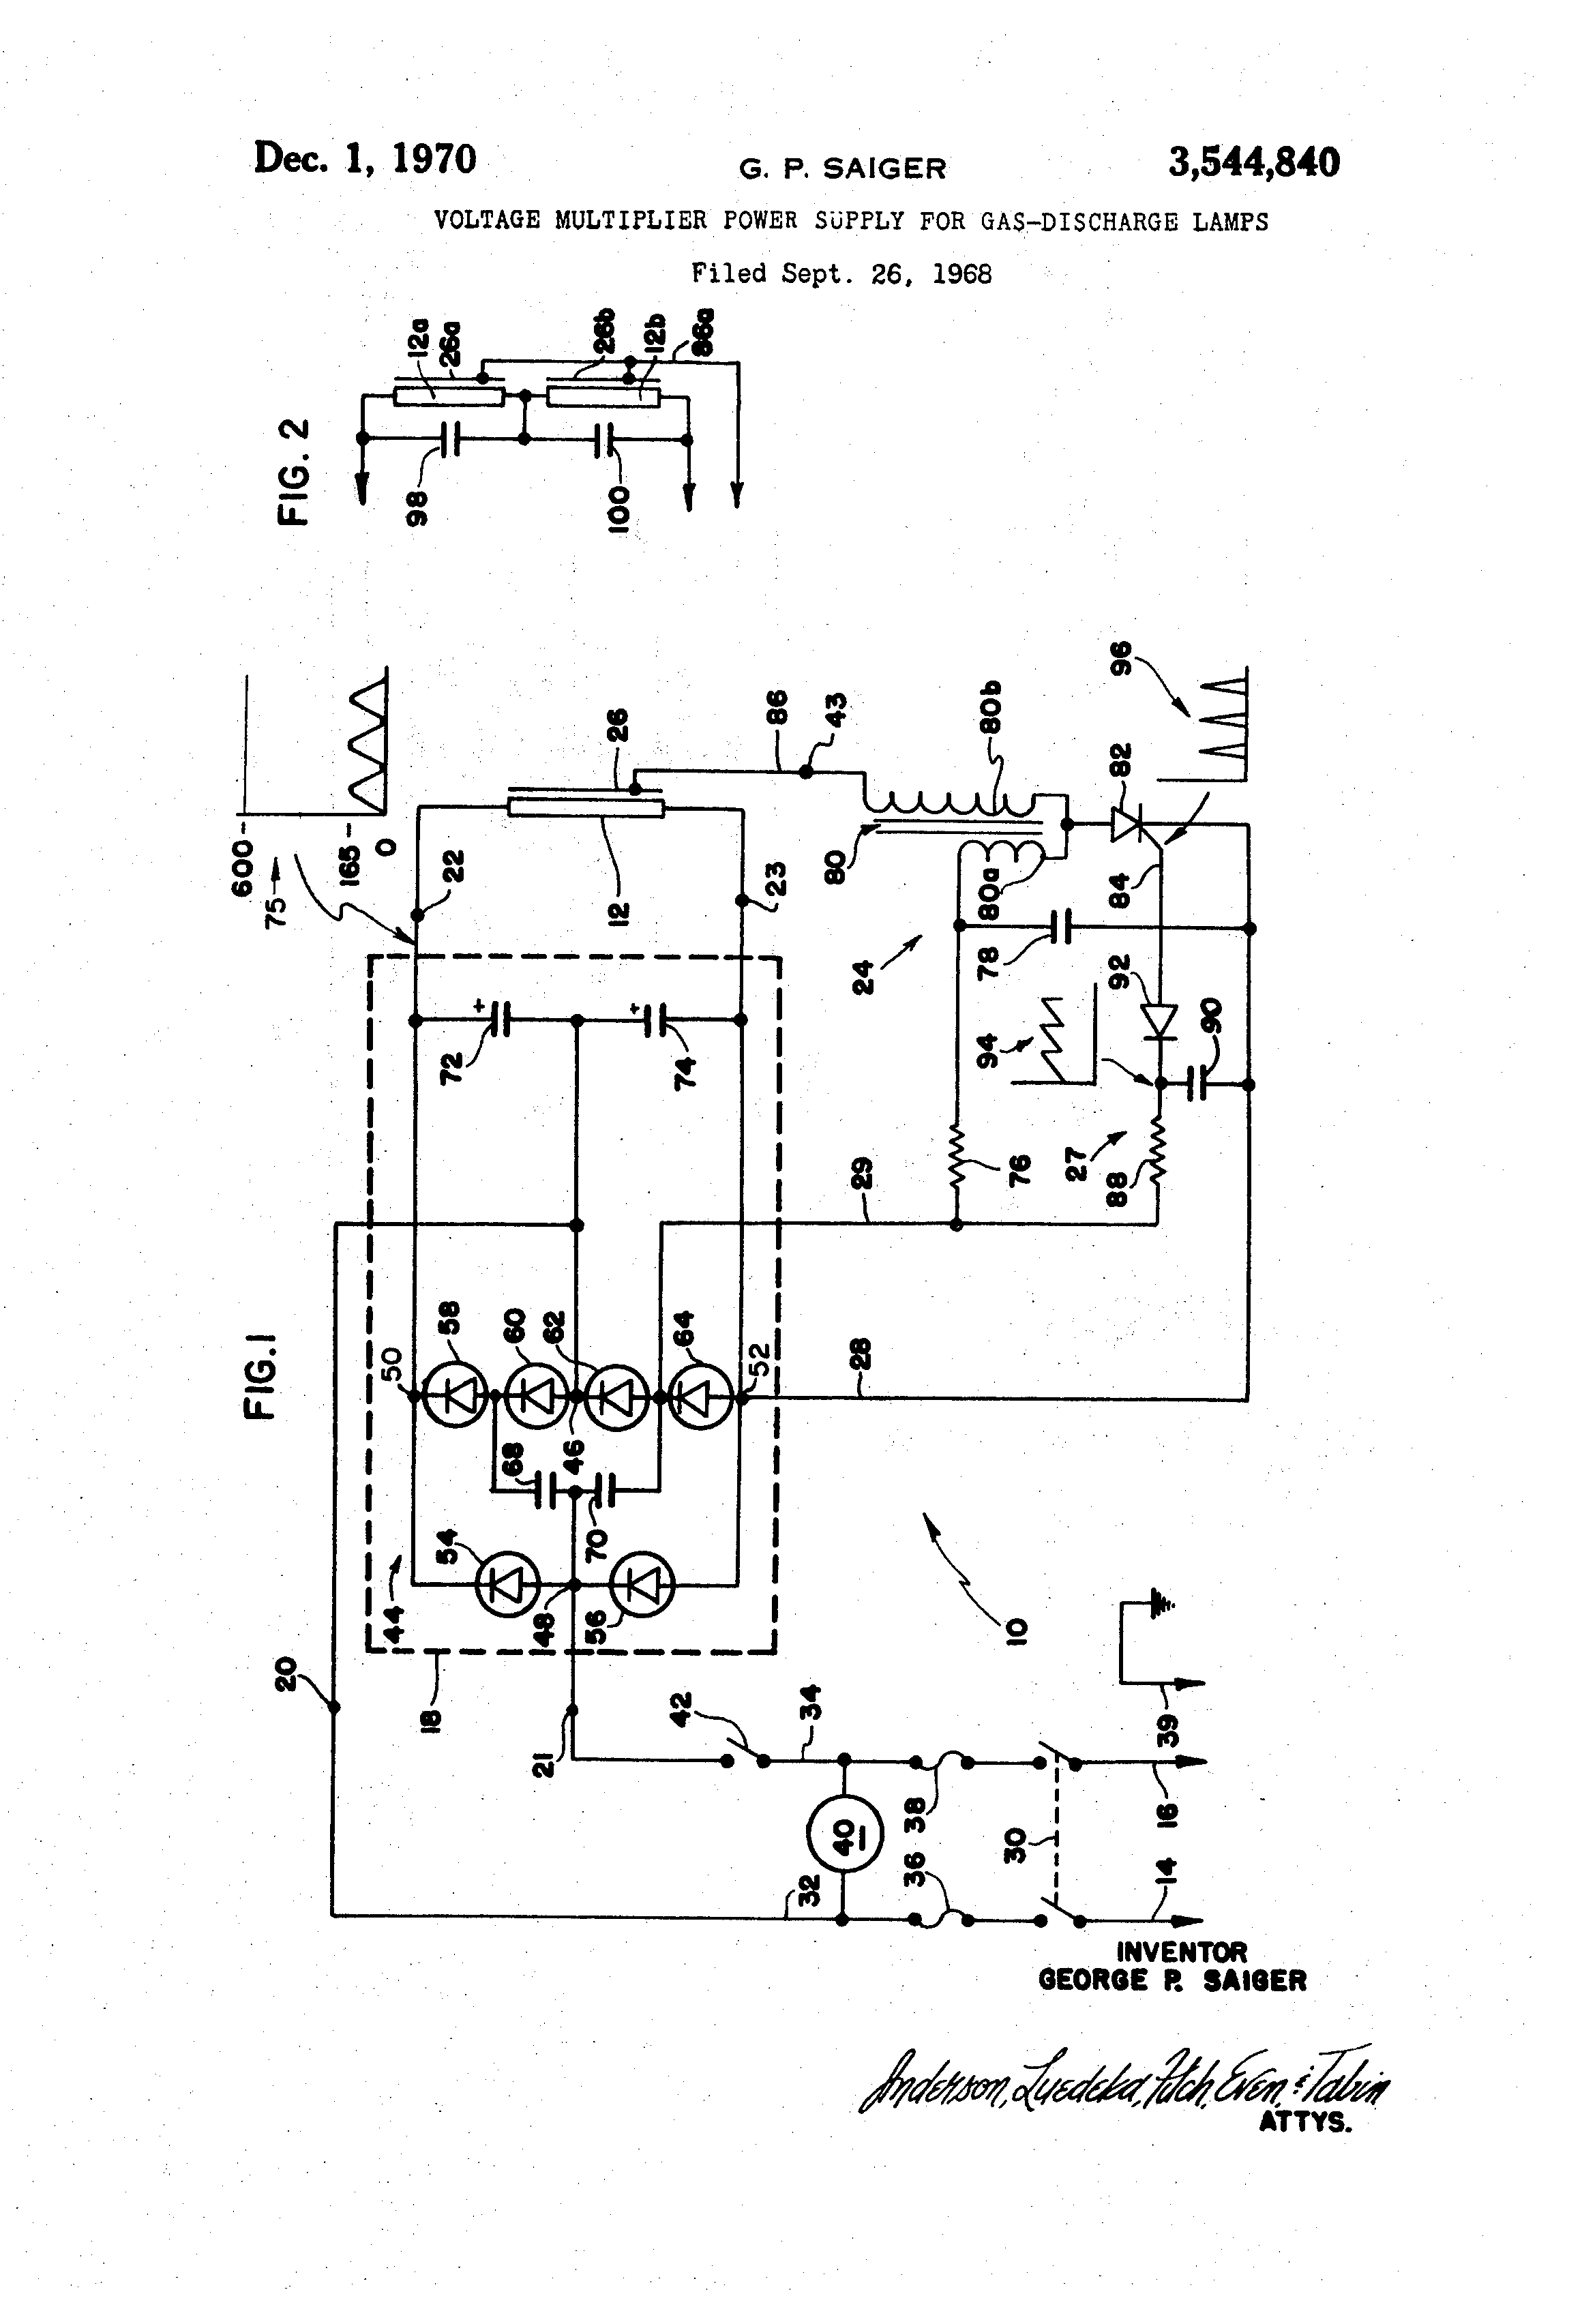 Brevet Us3544840 Voltage Multiplier Power Supply For Gas Discharge With Diodes And Capacitors Patent Drawing